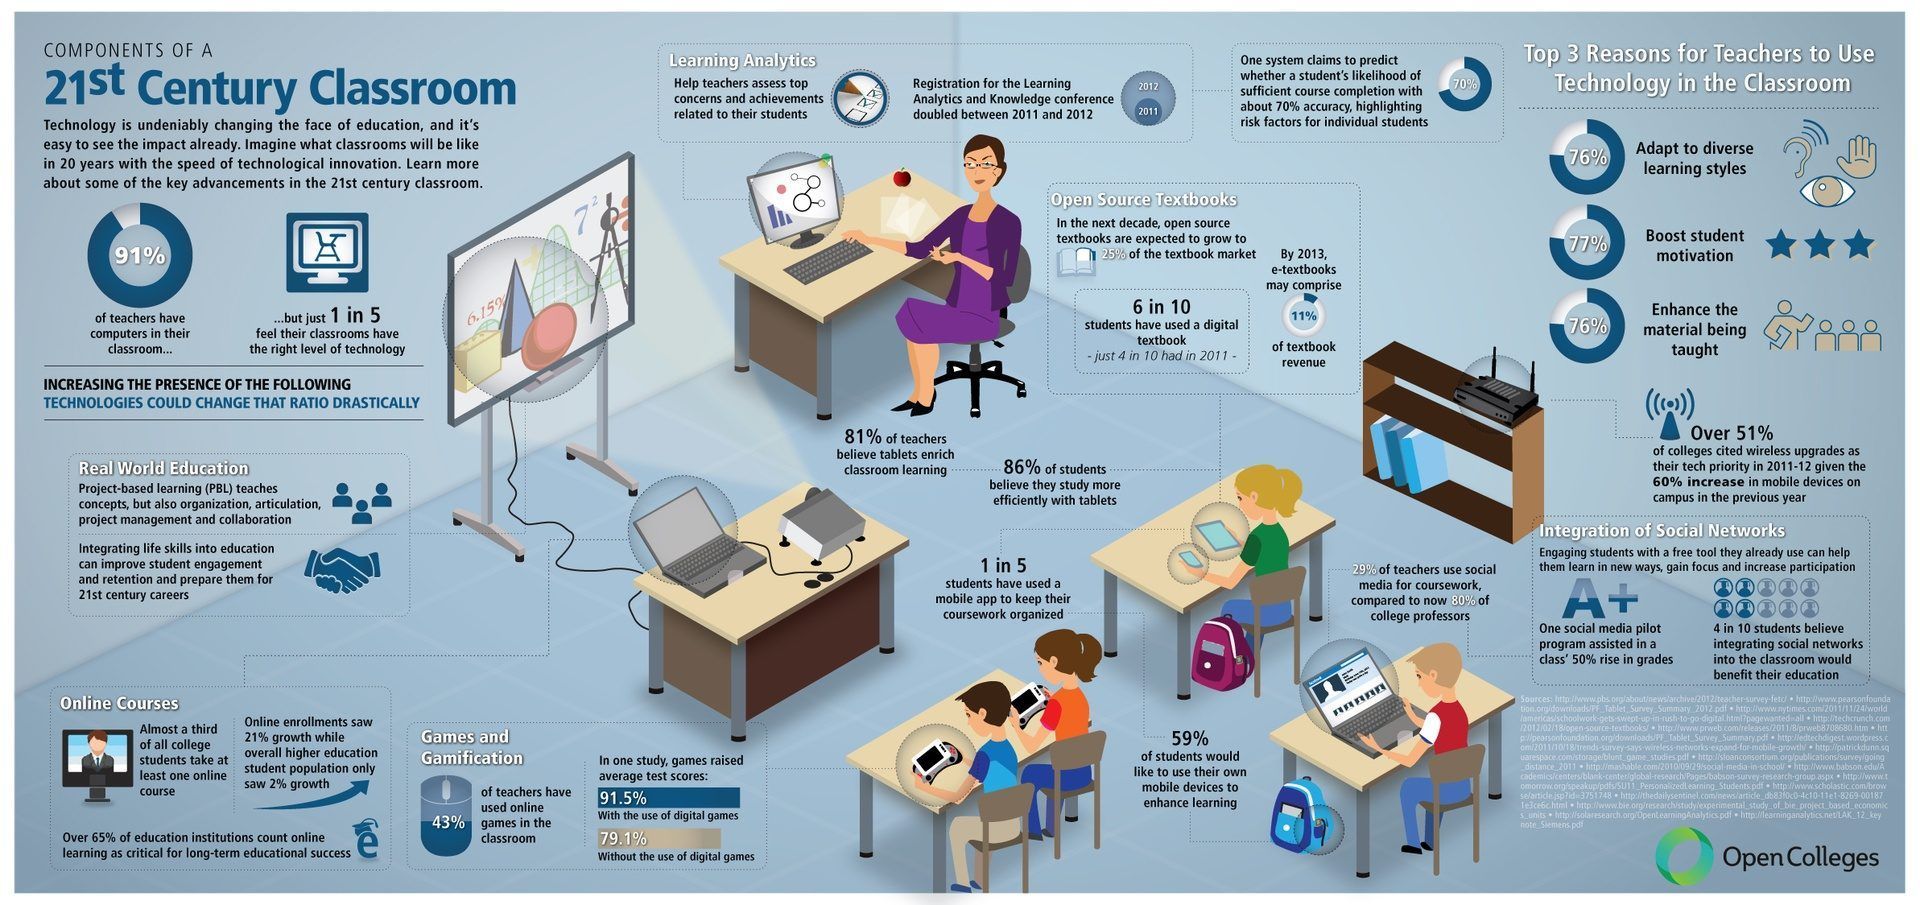 21st Century Educational Technology Classroom Infographic